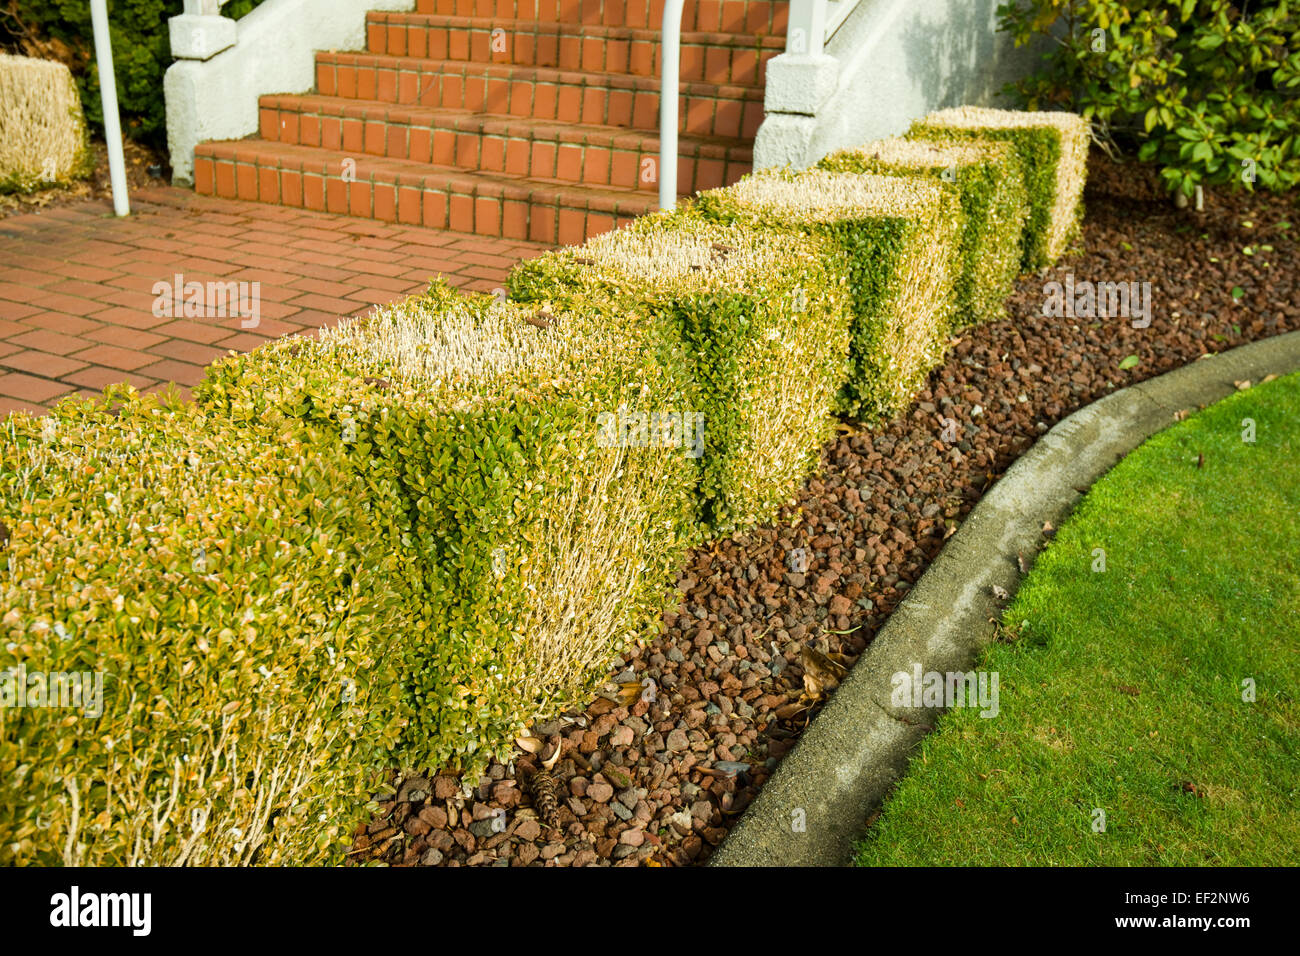 heavily trimmed boxwood hedge buxus sempervirens - Stock Image